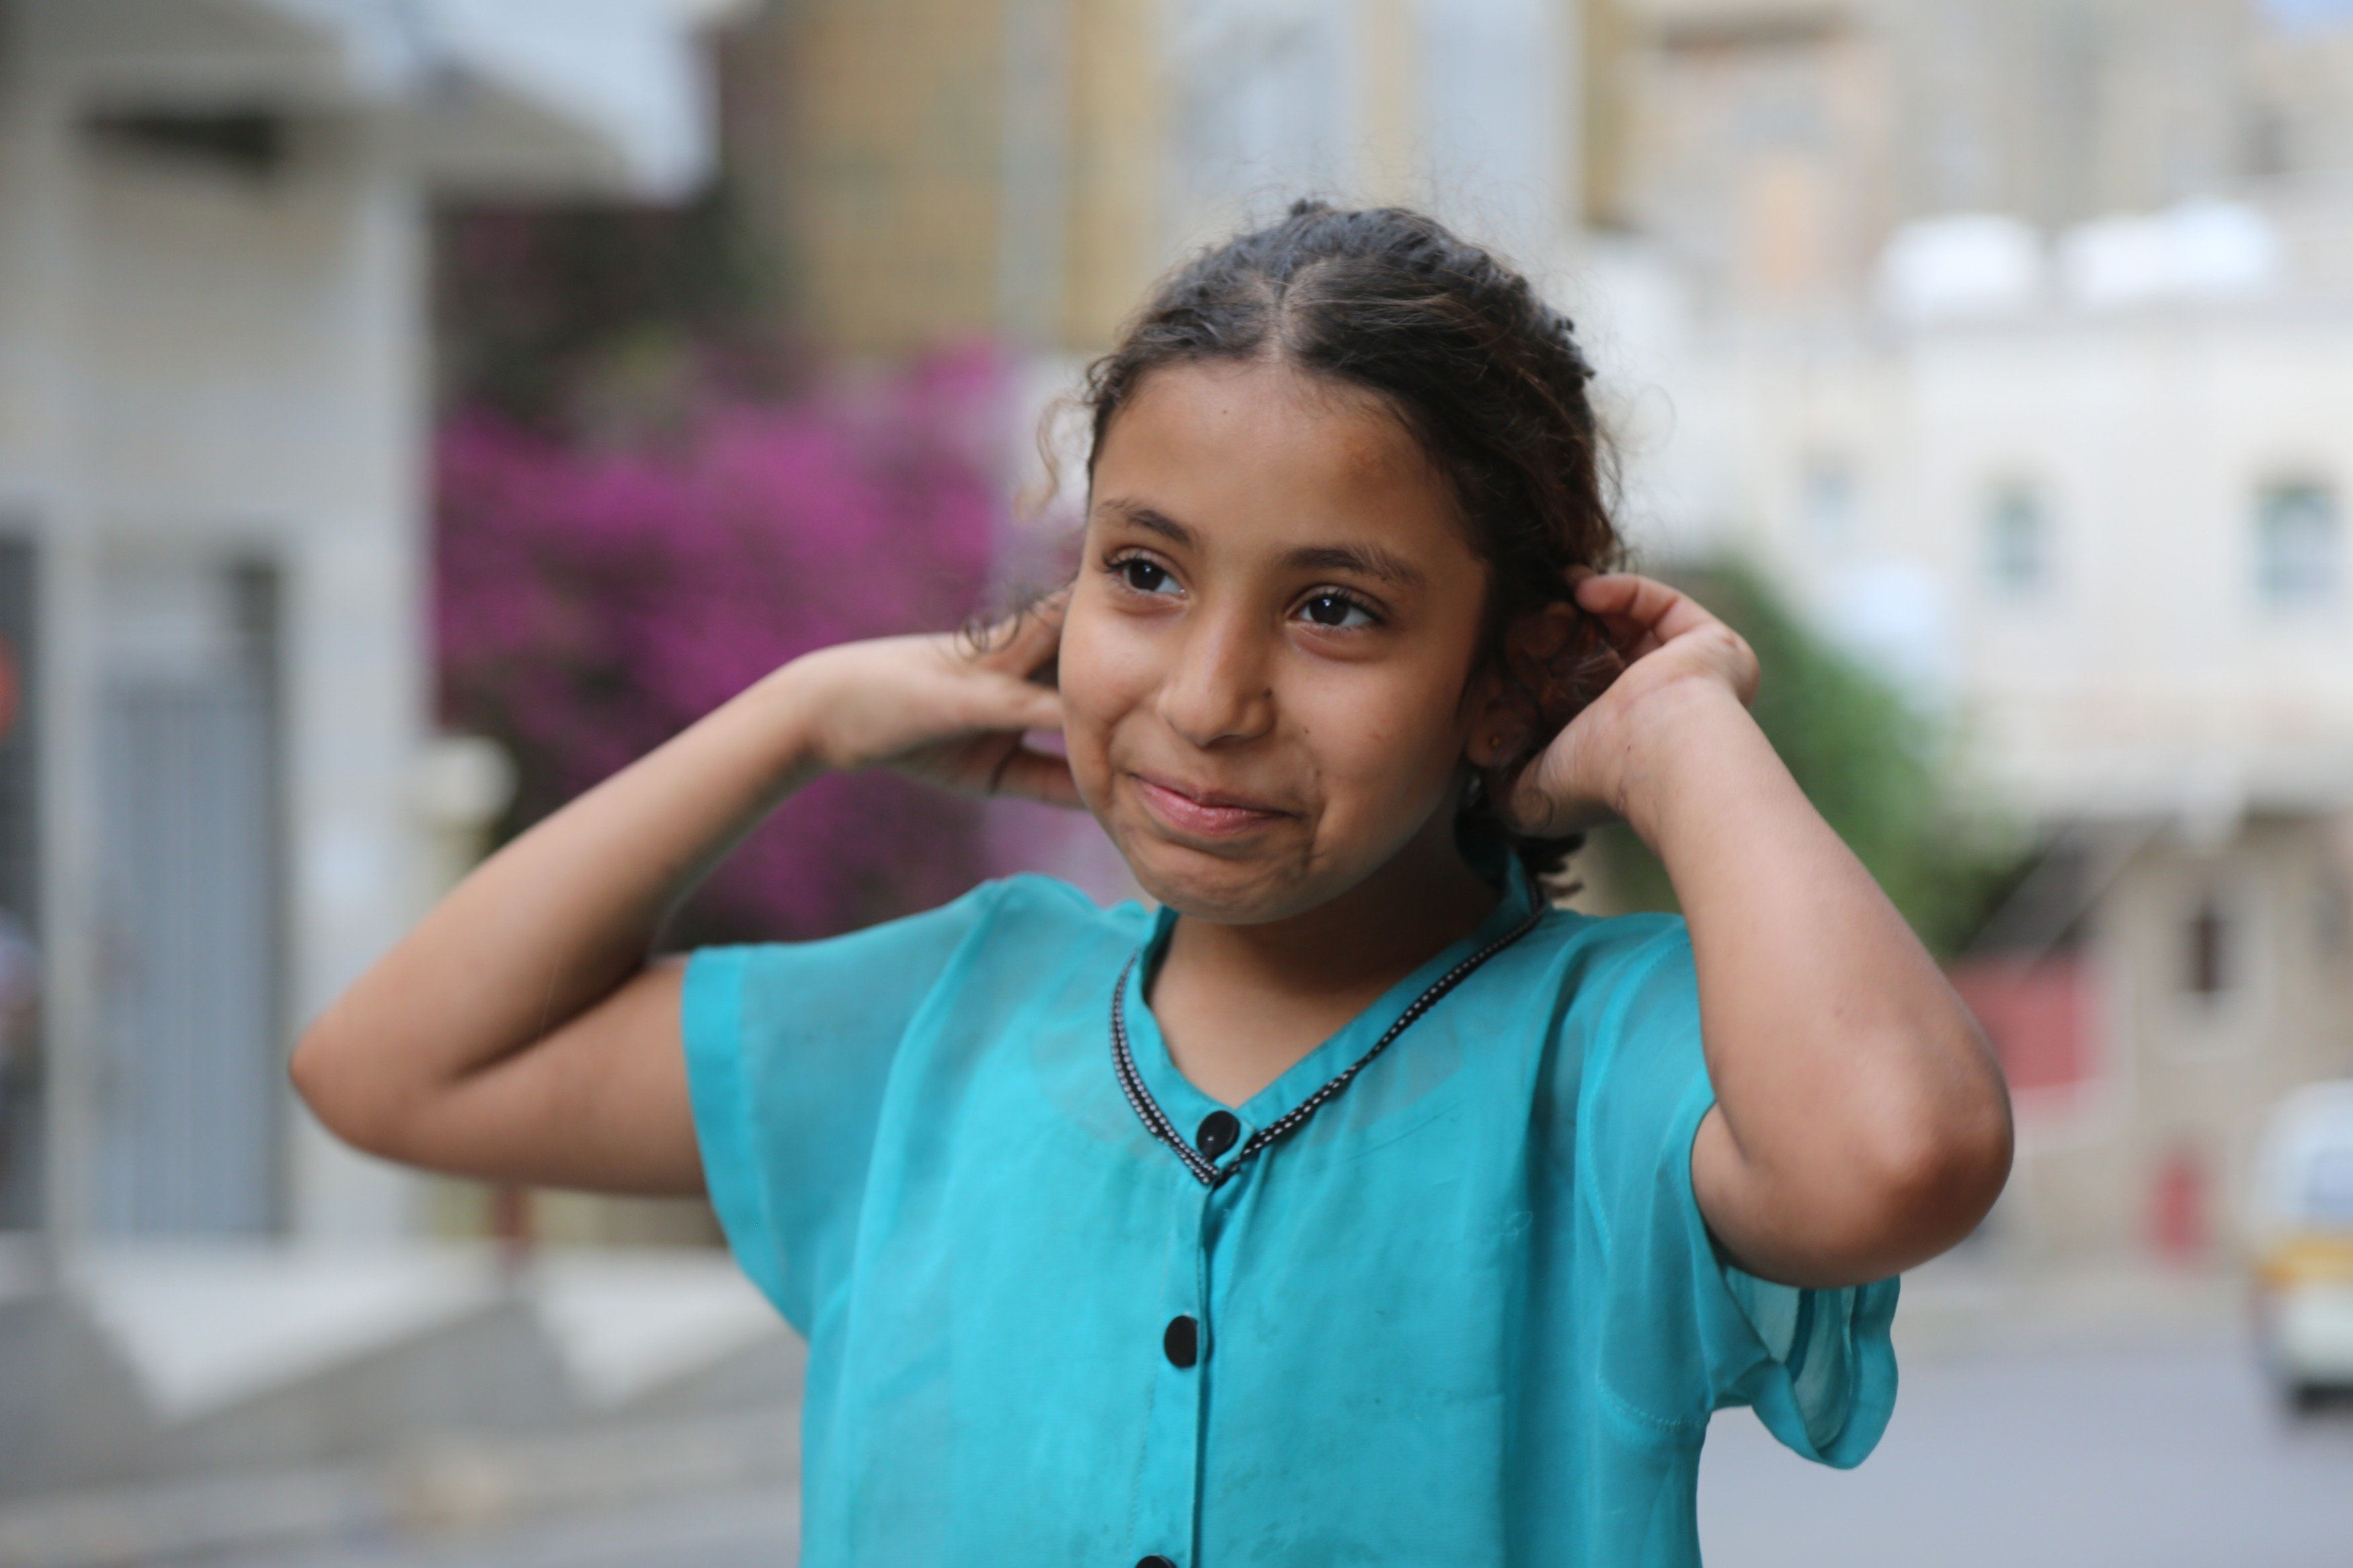 'I don't believe these good days can come back again': Sama reminisces of happier Eids spent with her parents (MEE/Khalid al-Banna)